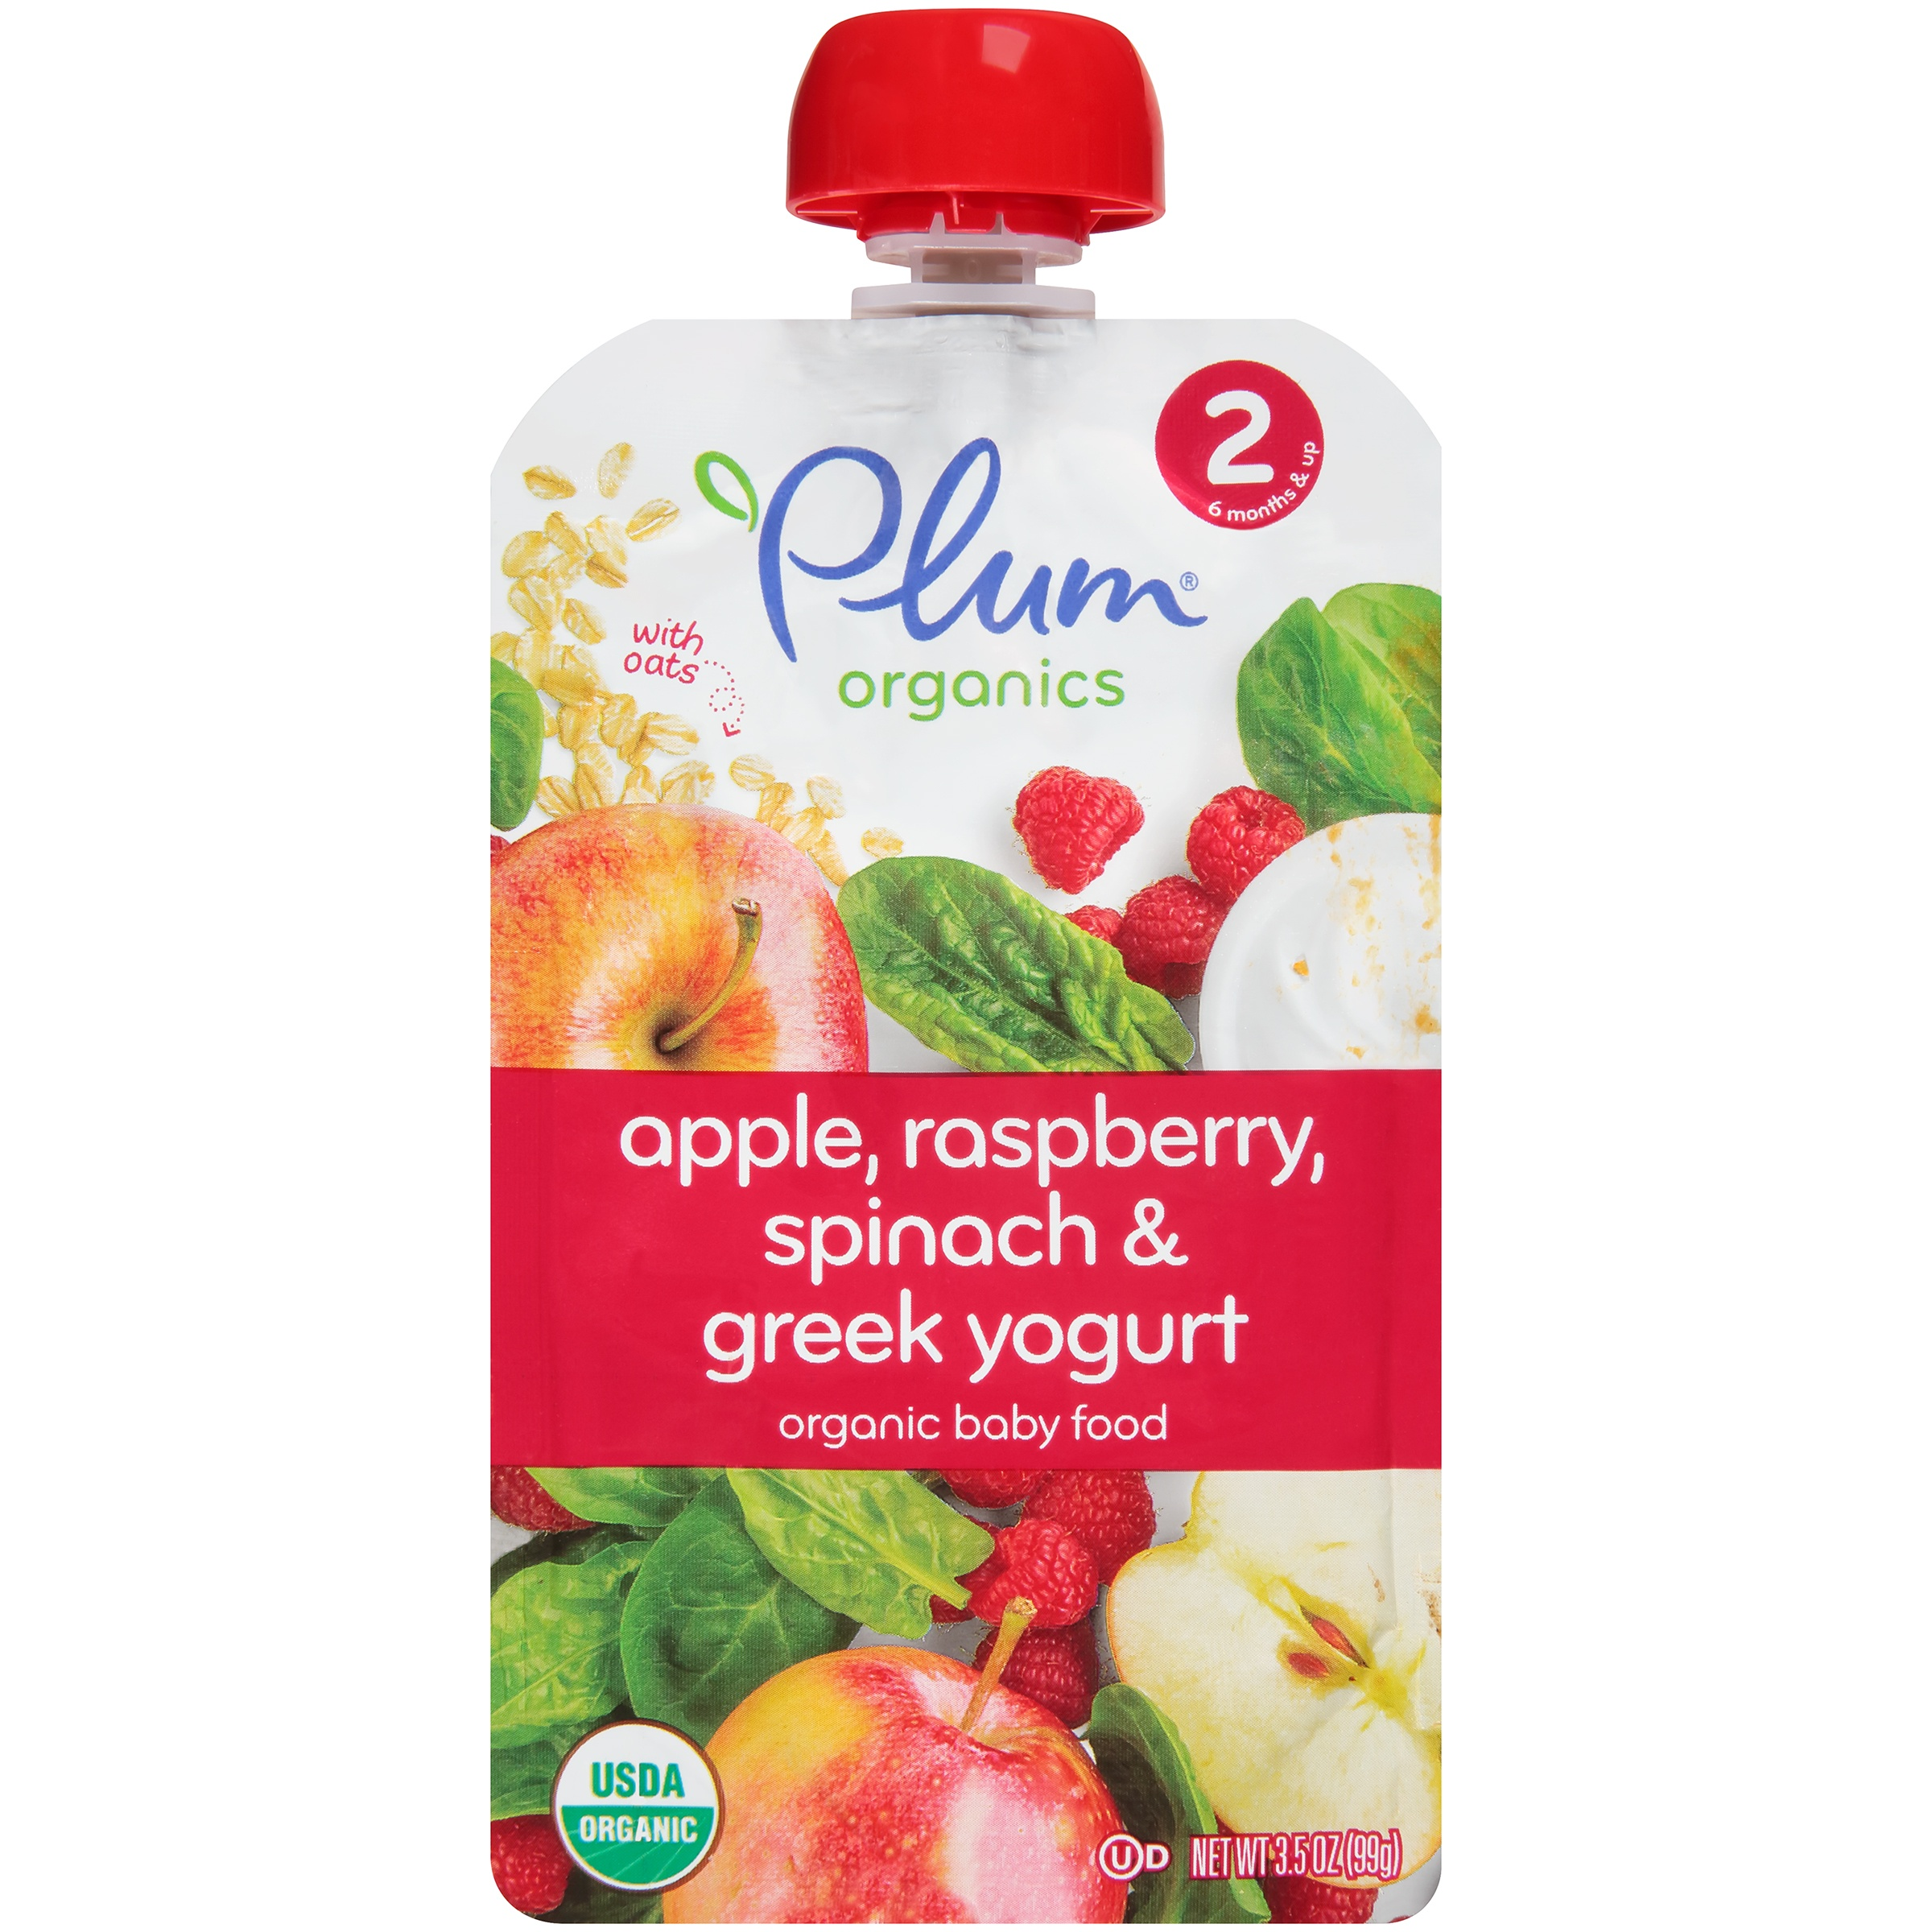 Plum  Organics Stage 2 Raspberry, Spinach & Greek Yogurt Organic Baby Food 3.5 oz. Pouch